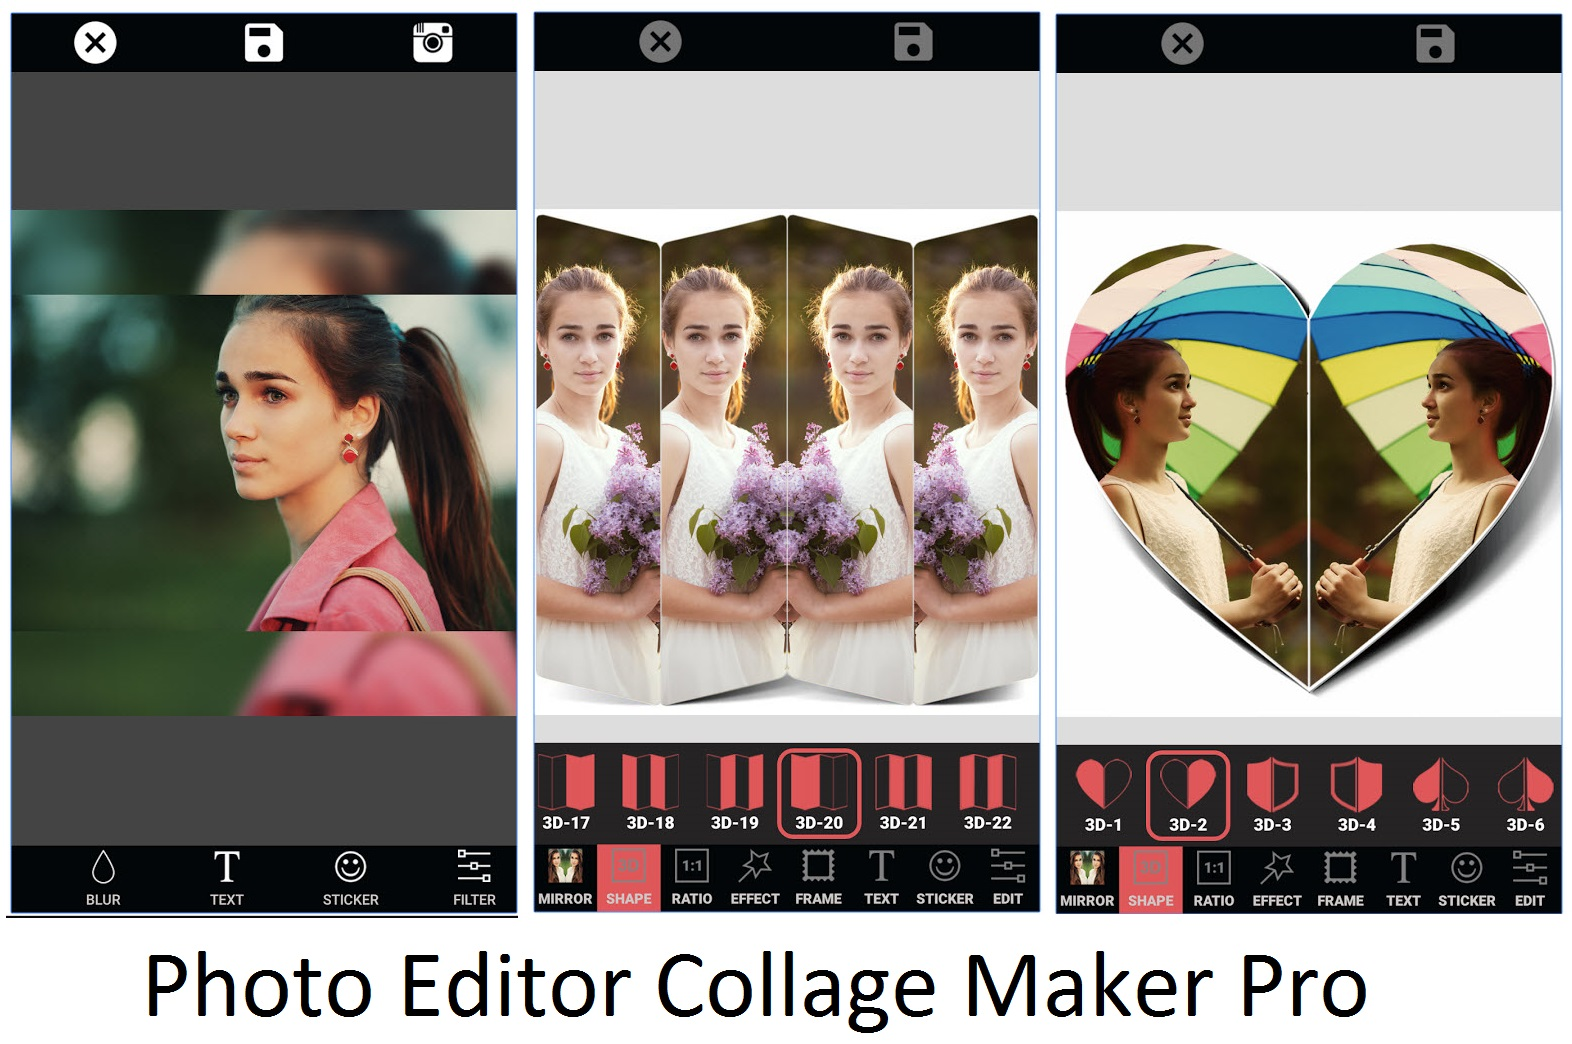 Photo Editor Collage Maker Pro